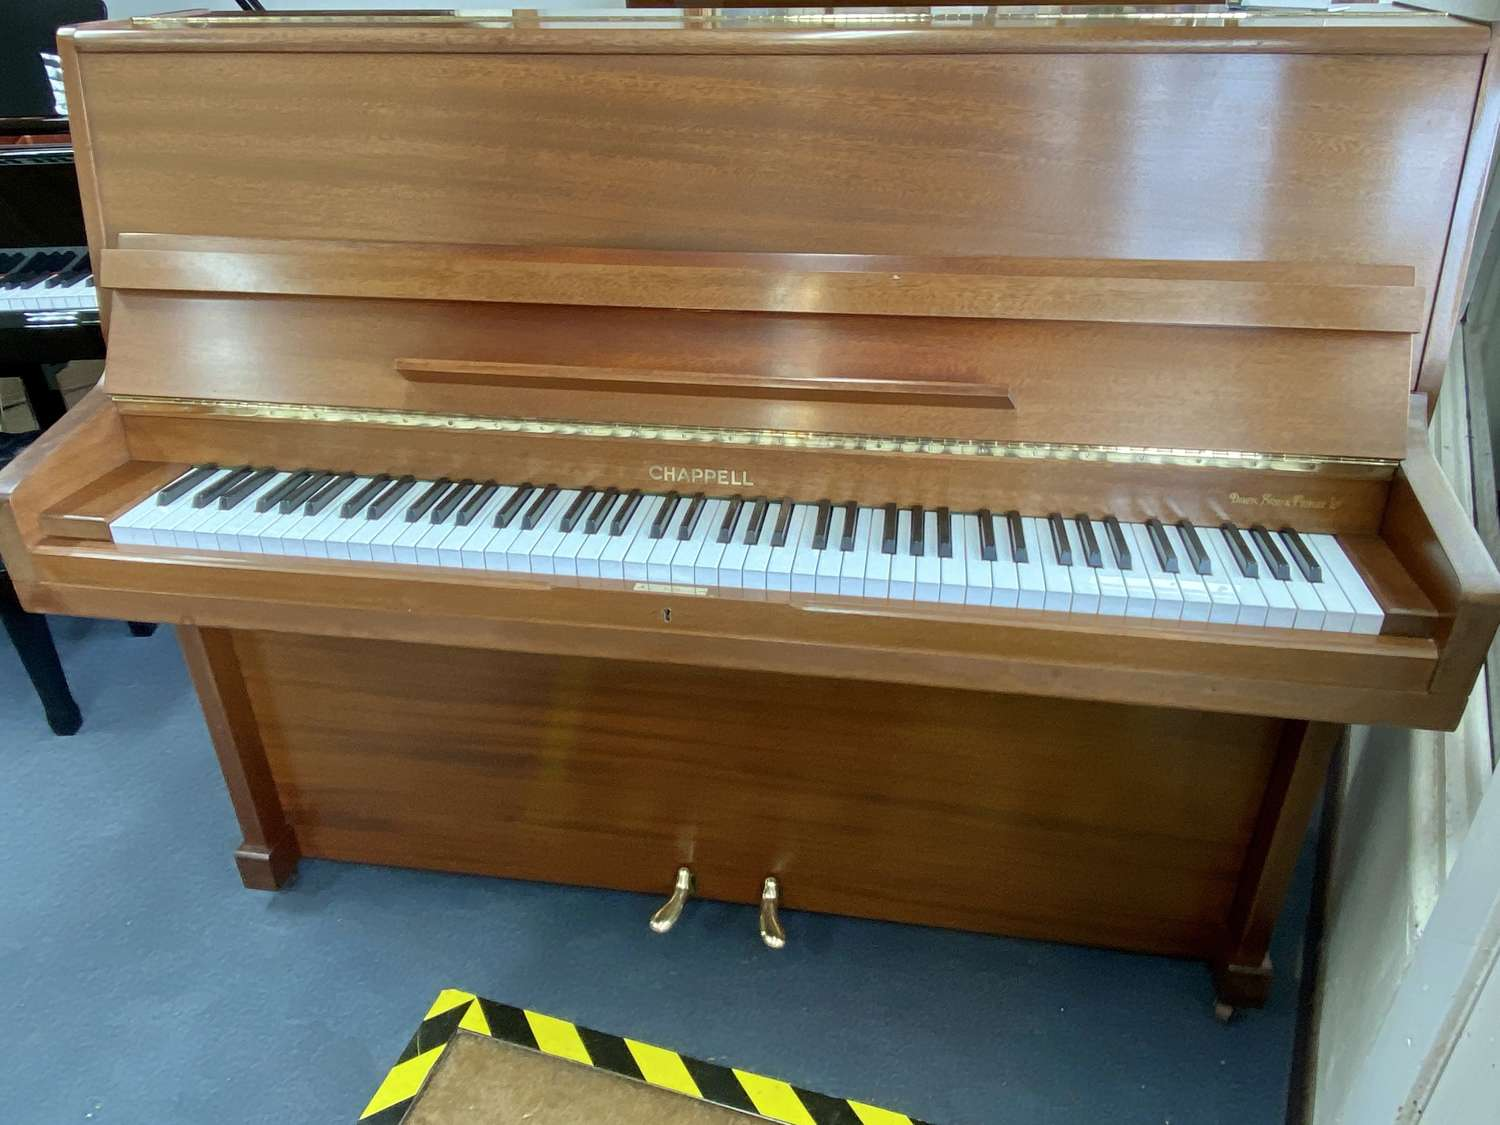 Chappell modern upright piano